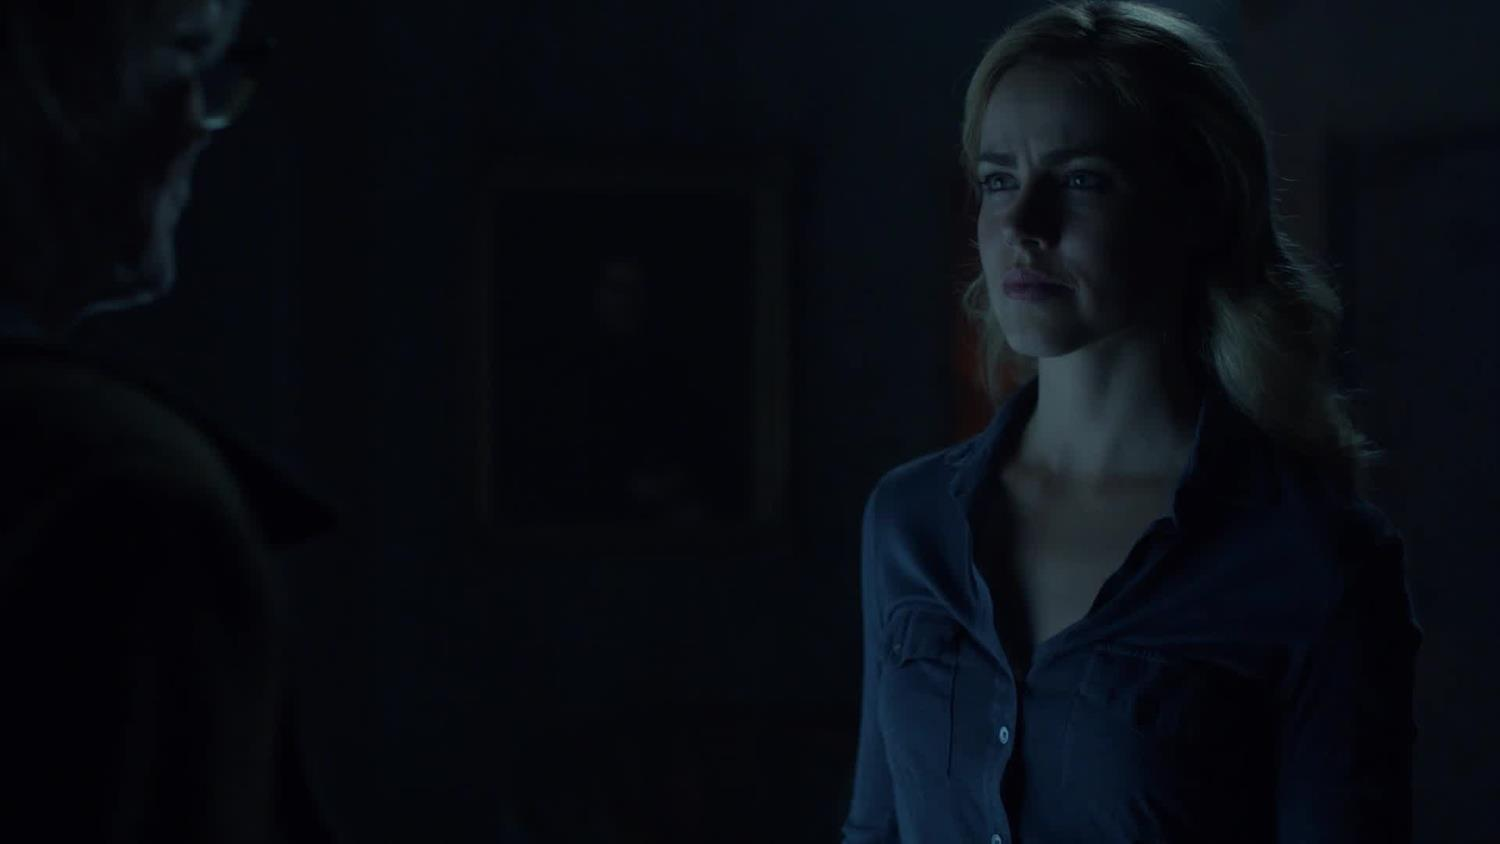 12 Monkeys Recap - Season 2, Episode 8